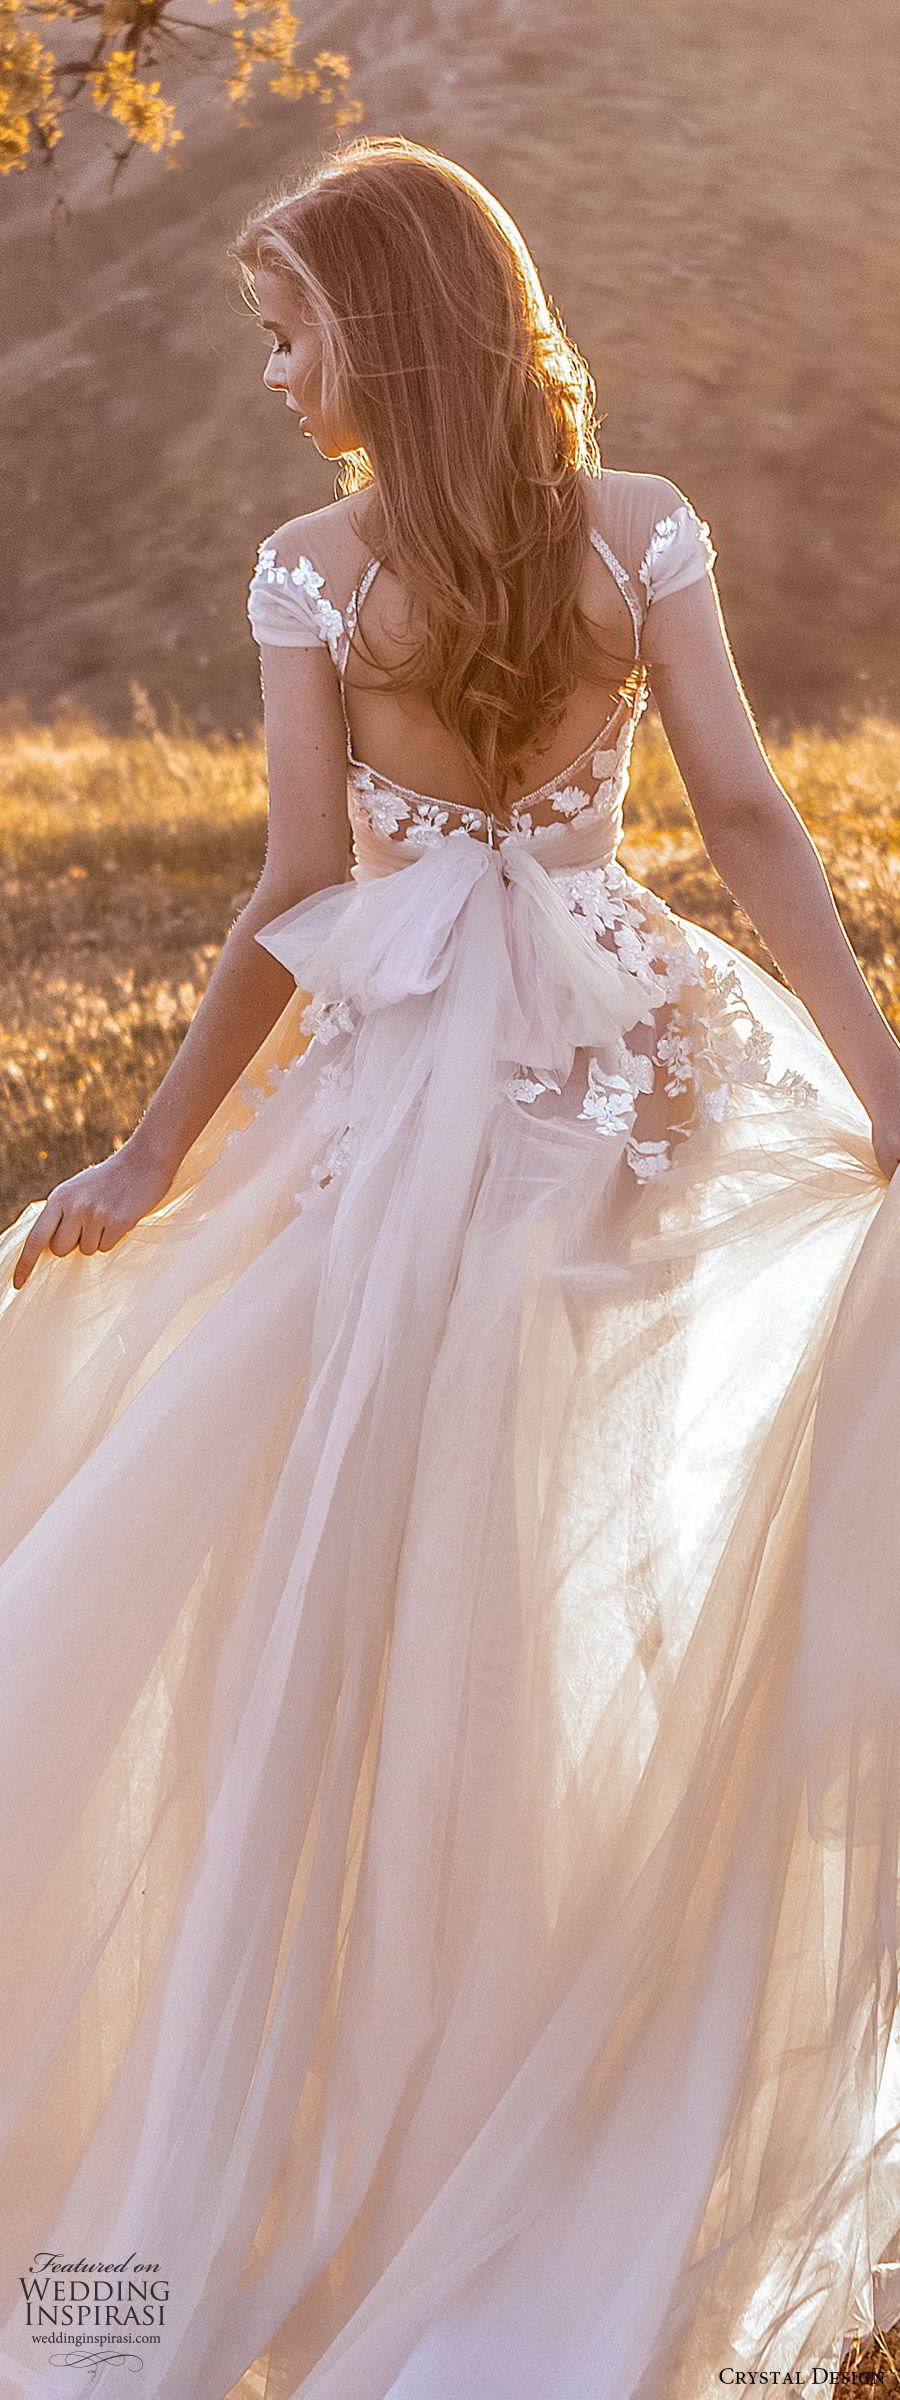 crystal design 2020 couture bridal cap sleeves sweetheart neckline embellished bodice a line ball gown wedding dress (7) blush color romantic princess keyhole back chapel train zbv